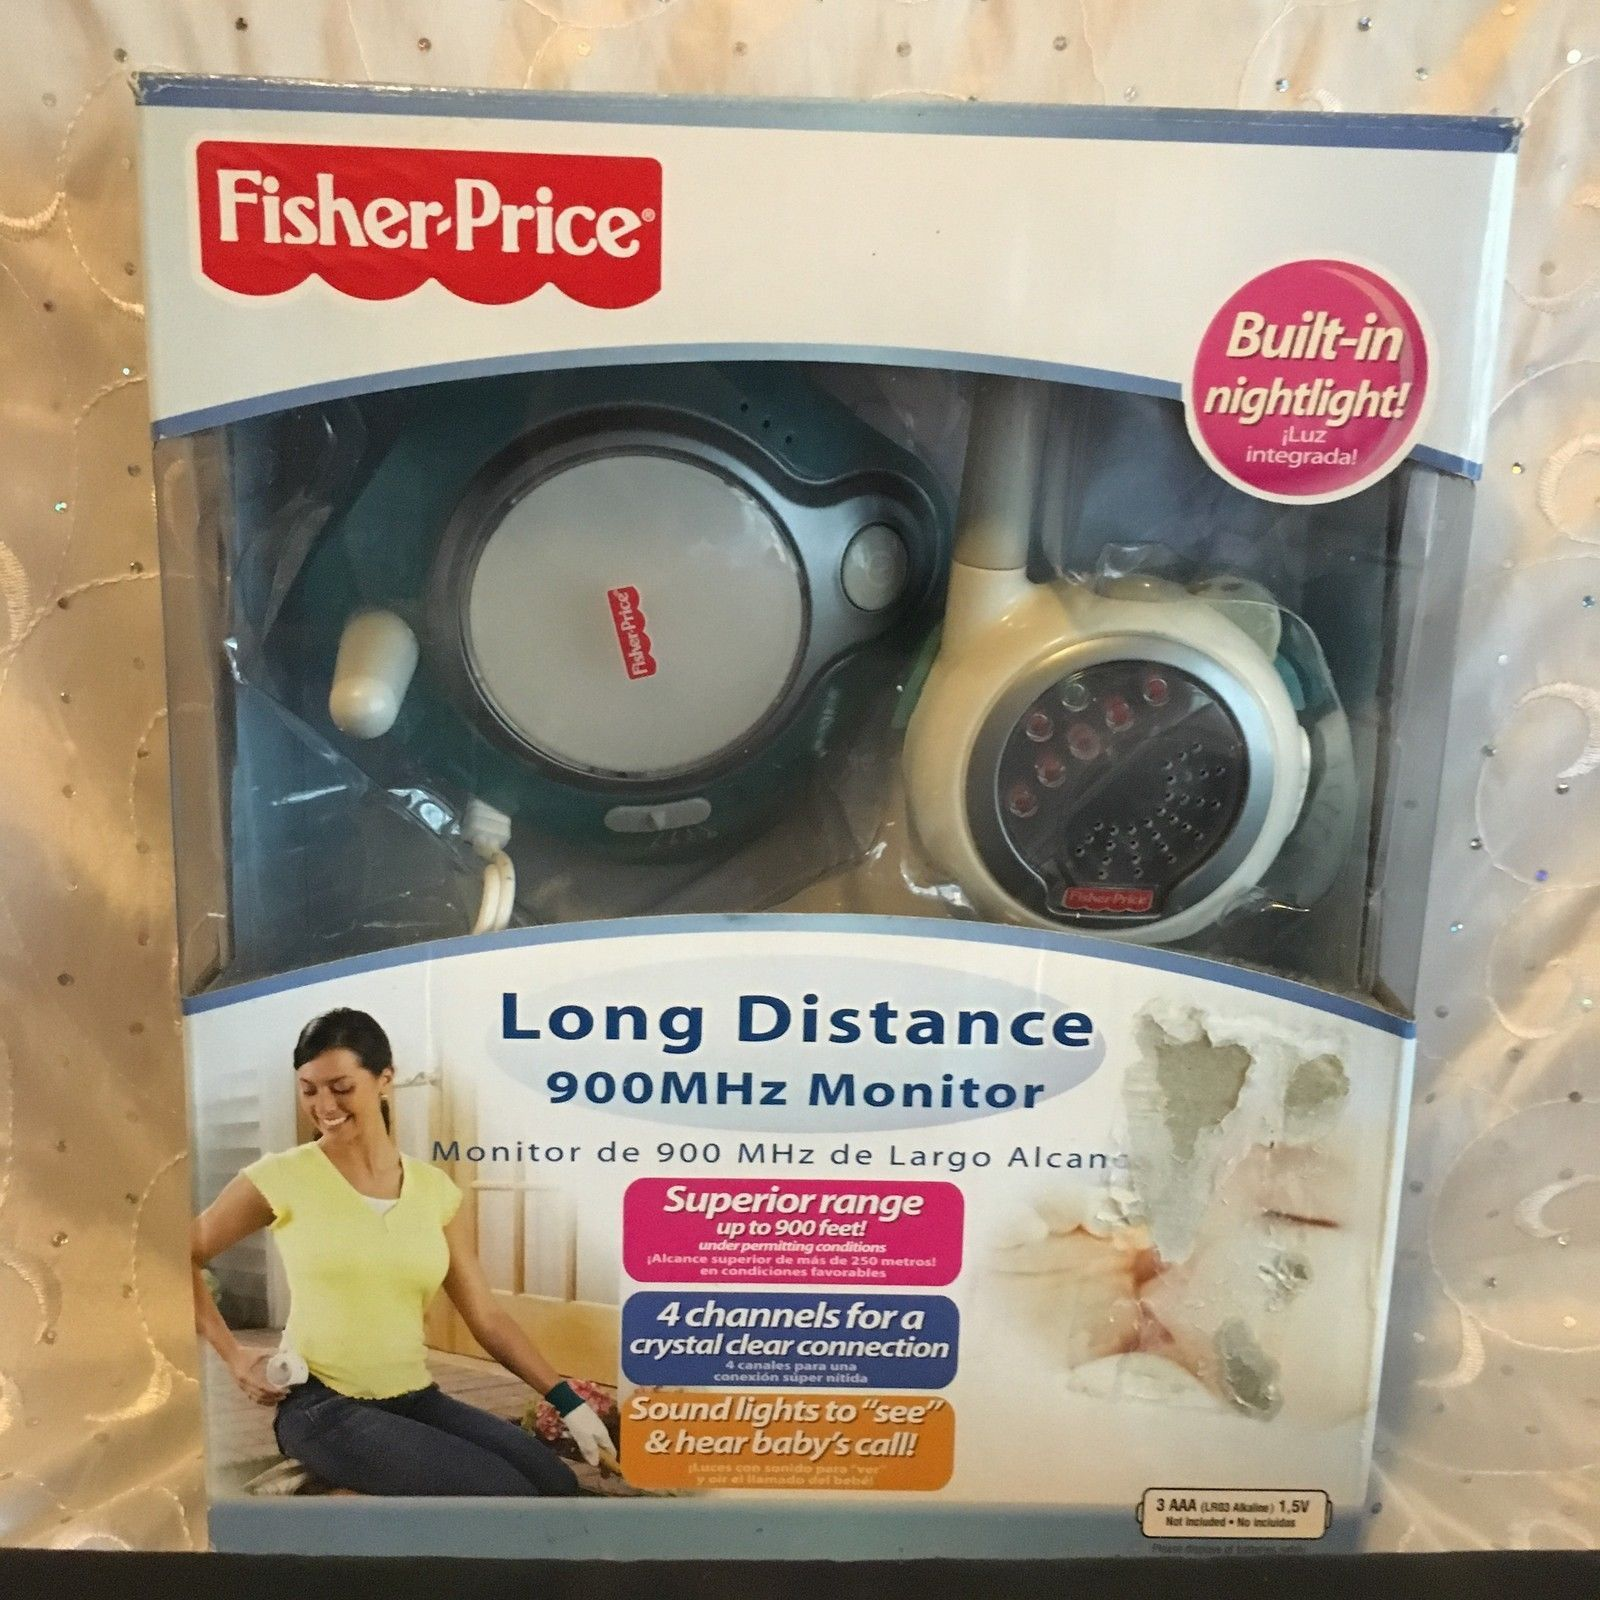 FISHER PRICE LONG DISTANCE 900MHz BABY MONITOR BUILT IN NIGHT LIGHT 4 CHANNELS